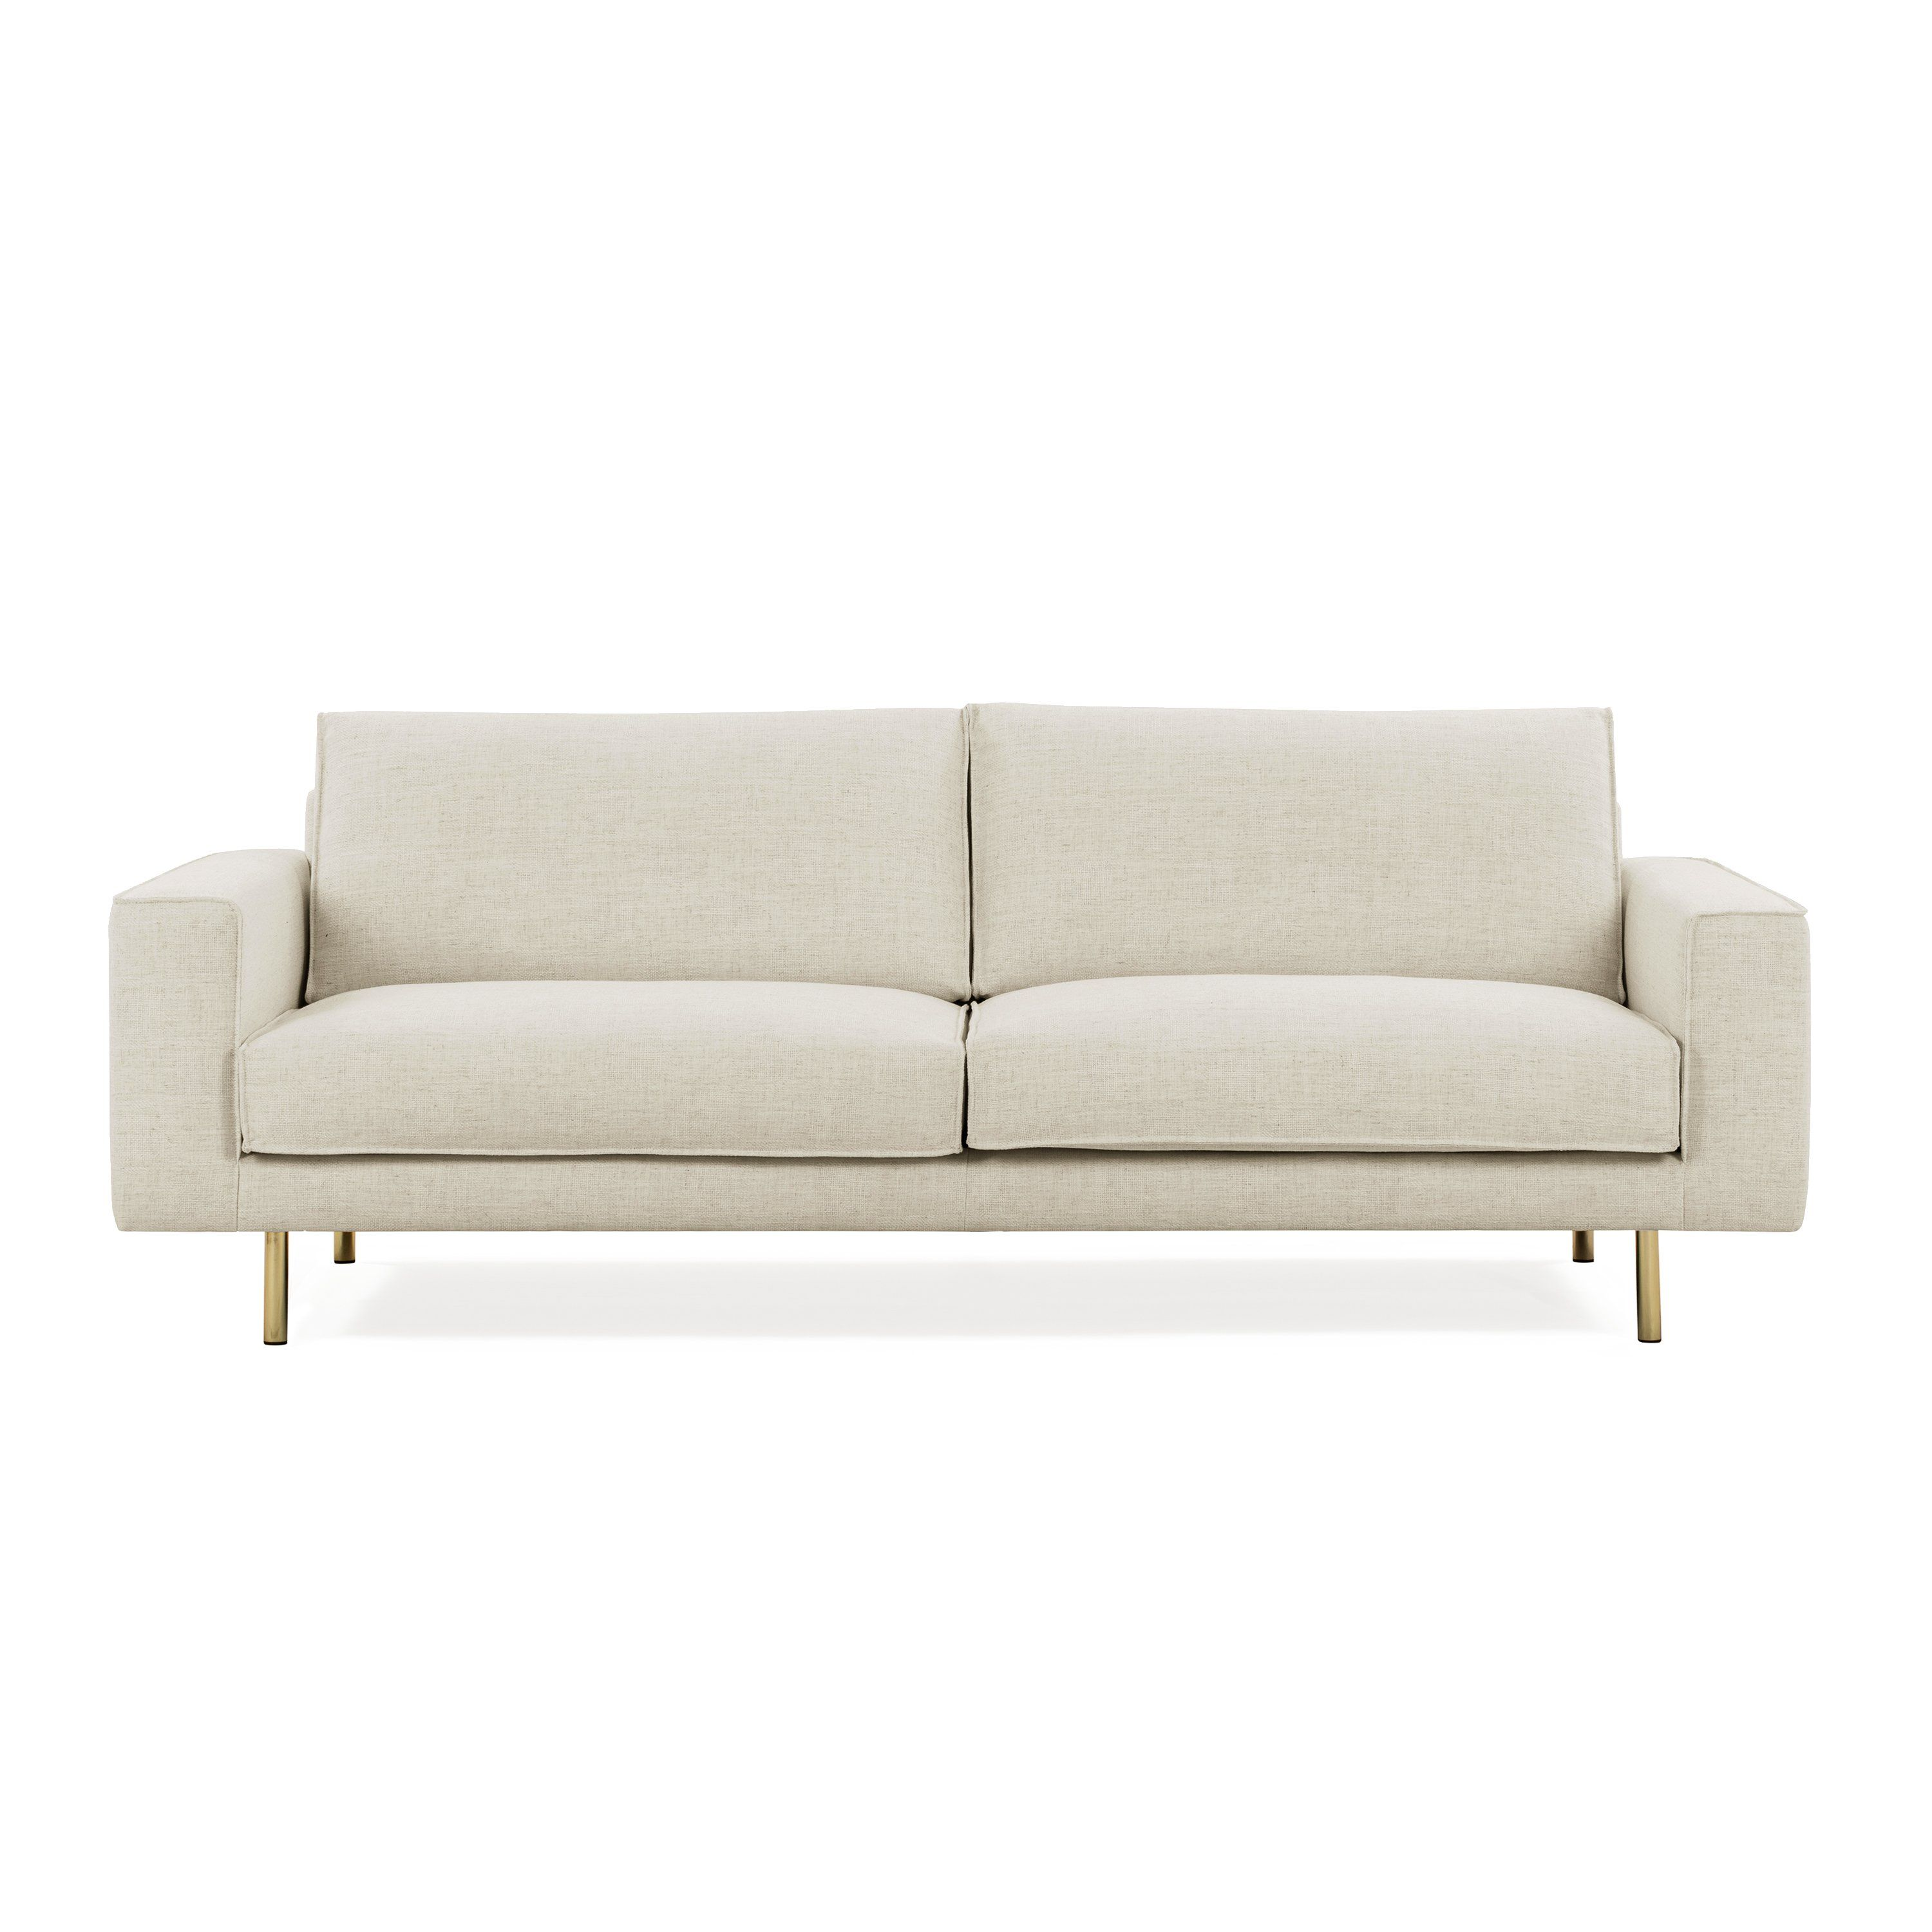 Accent Chair From Oggetti Designs Miami: Sofa, Outdoor Furniture Chairs, White Cushions